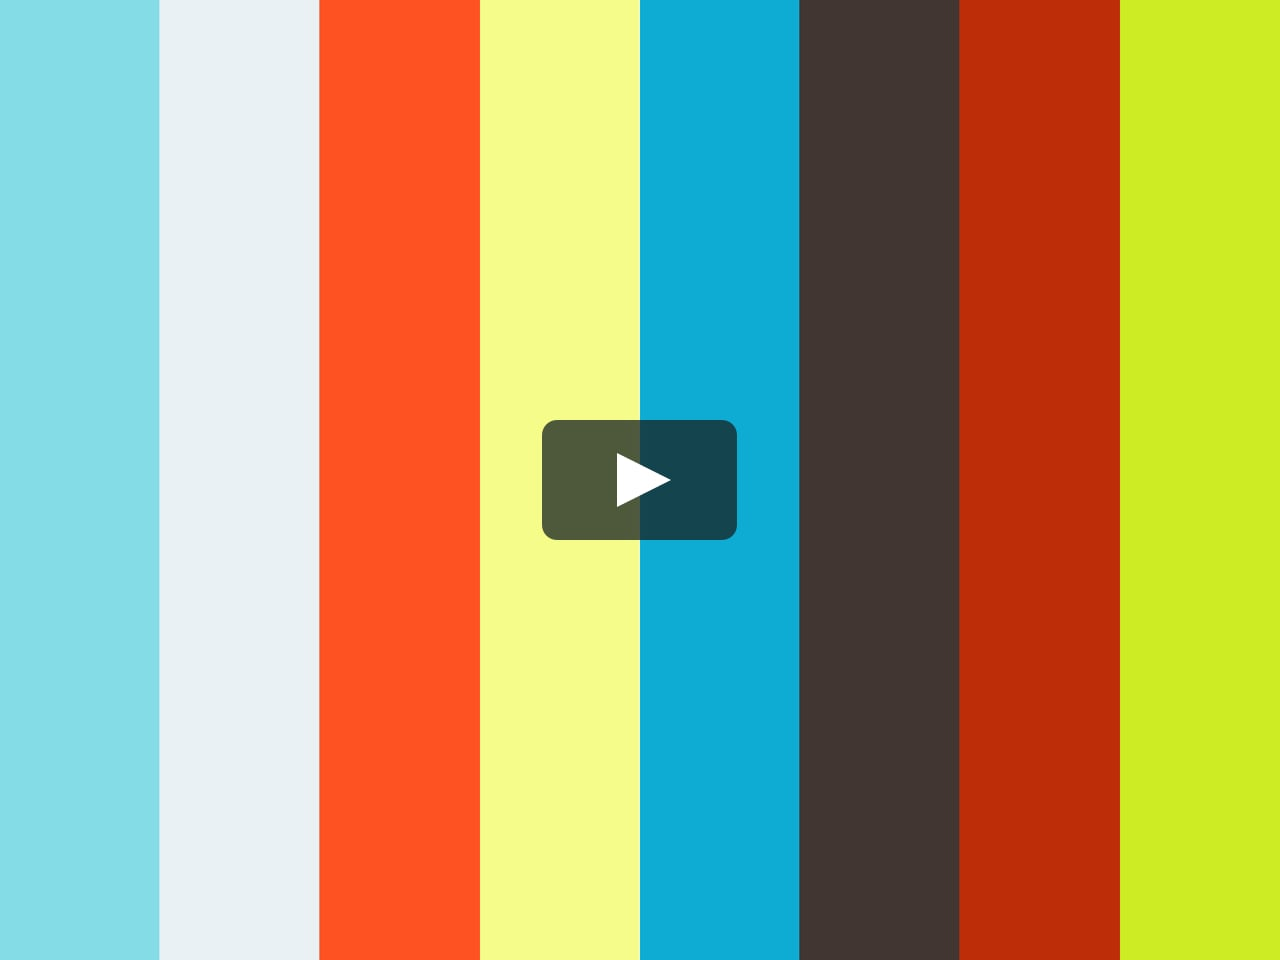 How Can I Resolve XEROX Printer Error Code 016-757